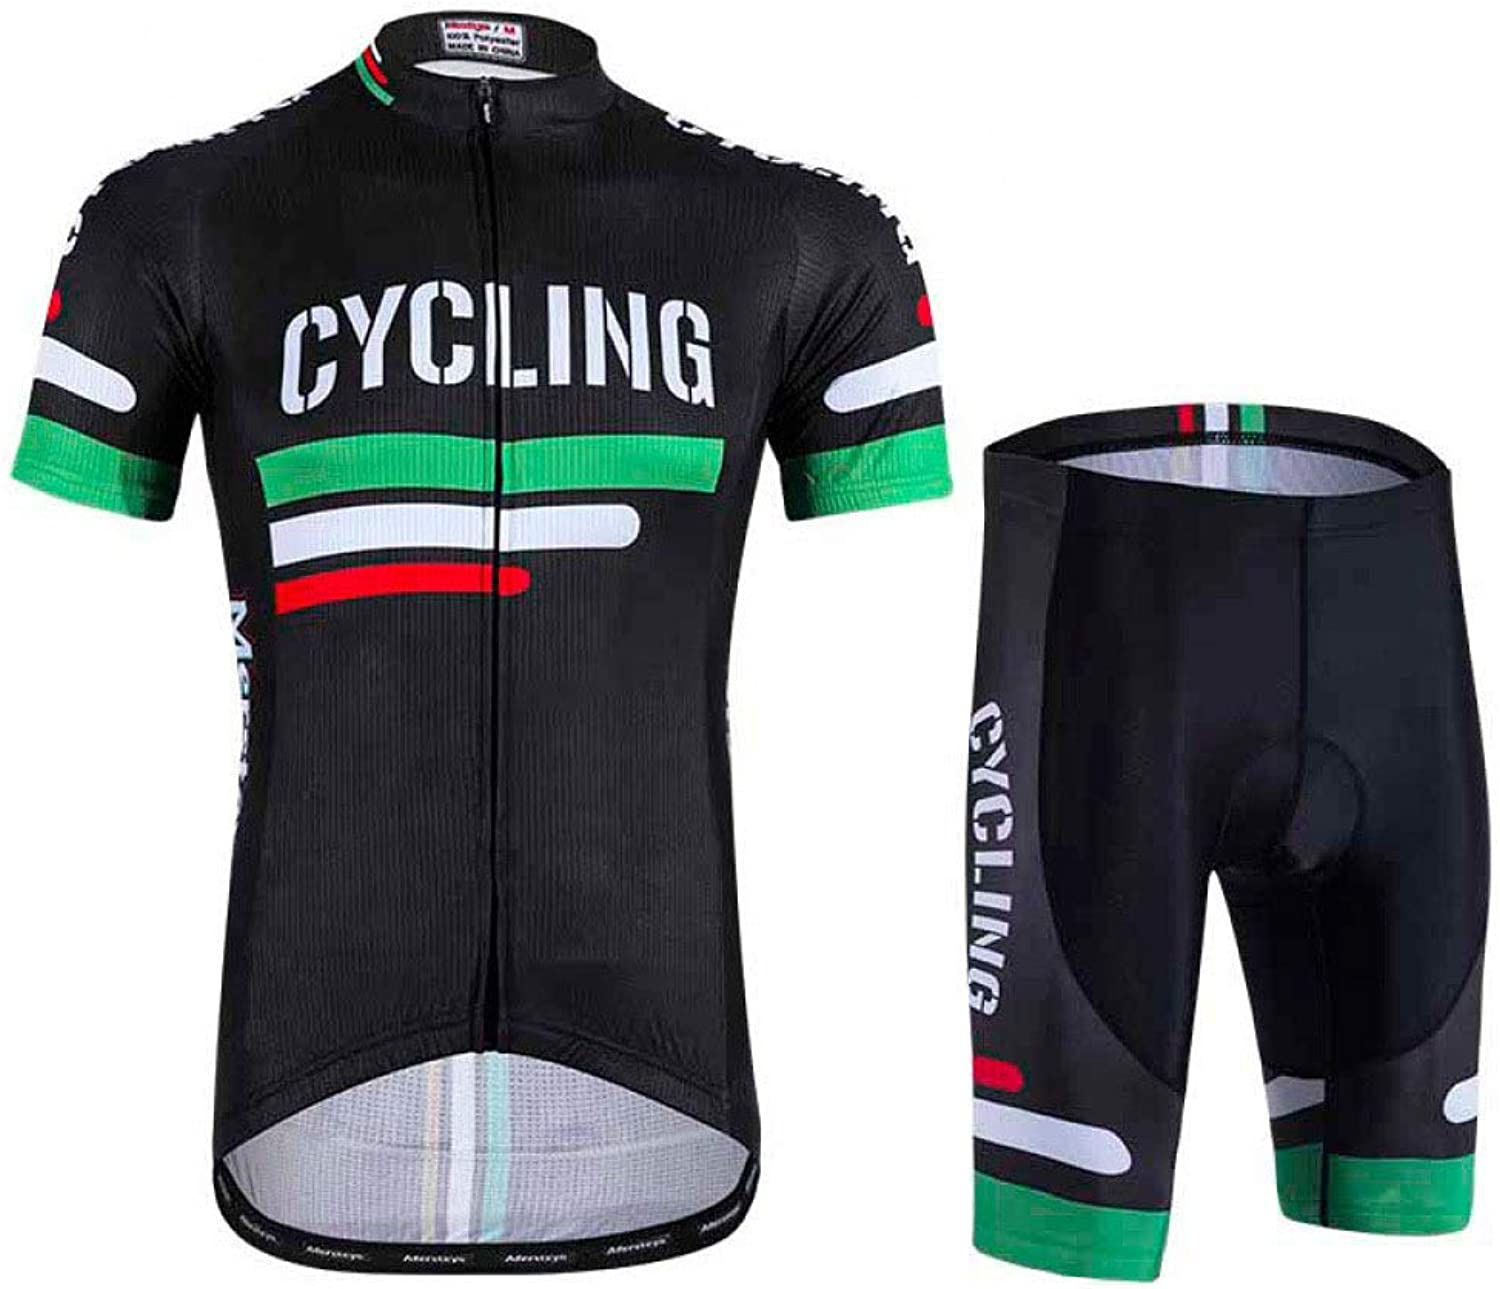 Cycling Sweatshirt Breathable Short Sleeve Cycling Jersey with 3D Gel Pad Strap Shorts for Professional Cycling Clothing,GreenXXXL